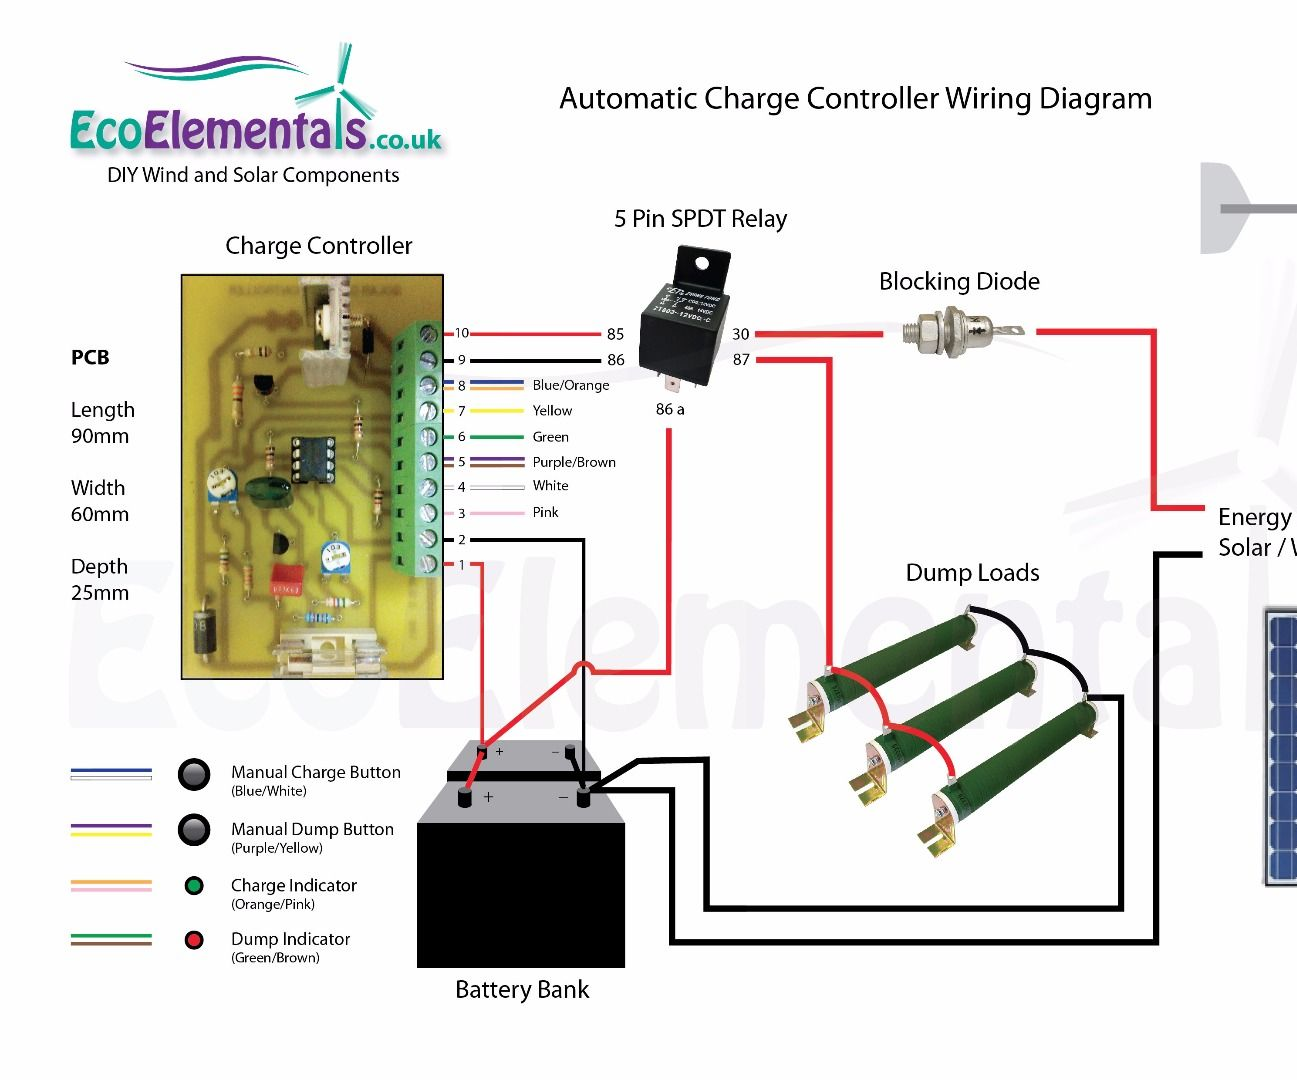 charge controller wiring diagram for diy wind turbine or solar panels victron solar charge controller wiring diagram solar controller wiring diagram [ 1297 x 1080 Pixel ]